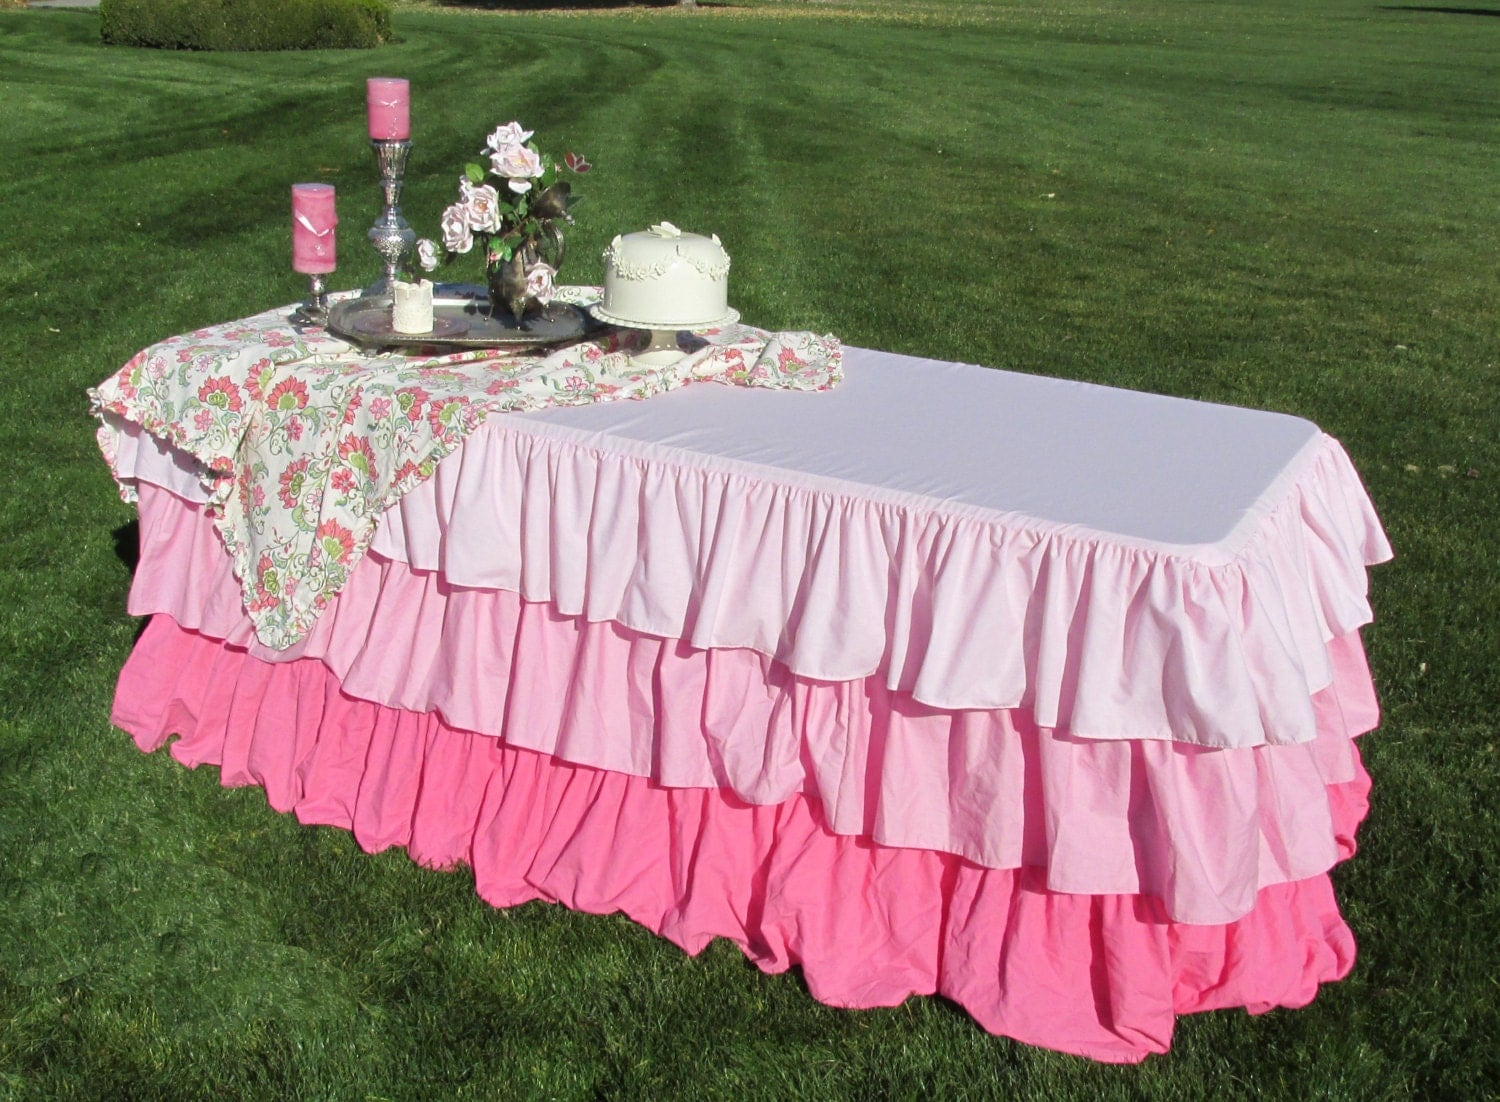 Ombre Ruffled Tablecloth-Pink Wedding Decor Baby Shower Ruffled Tablecloth